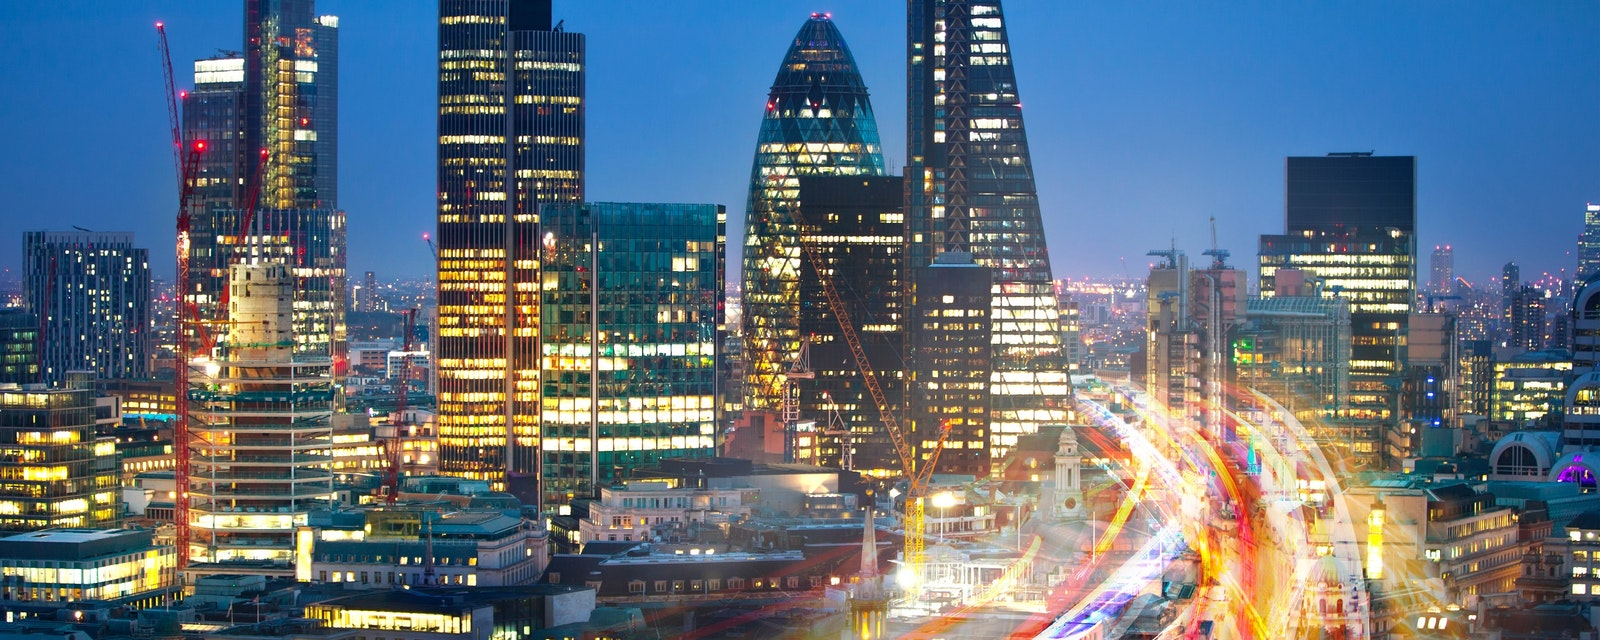 City,Of,London,View,At,Sunset,And,Busy,Road,With